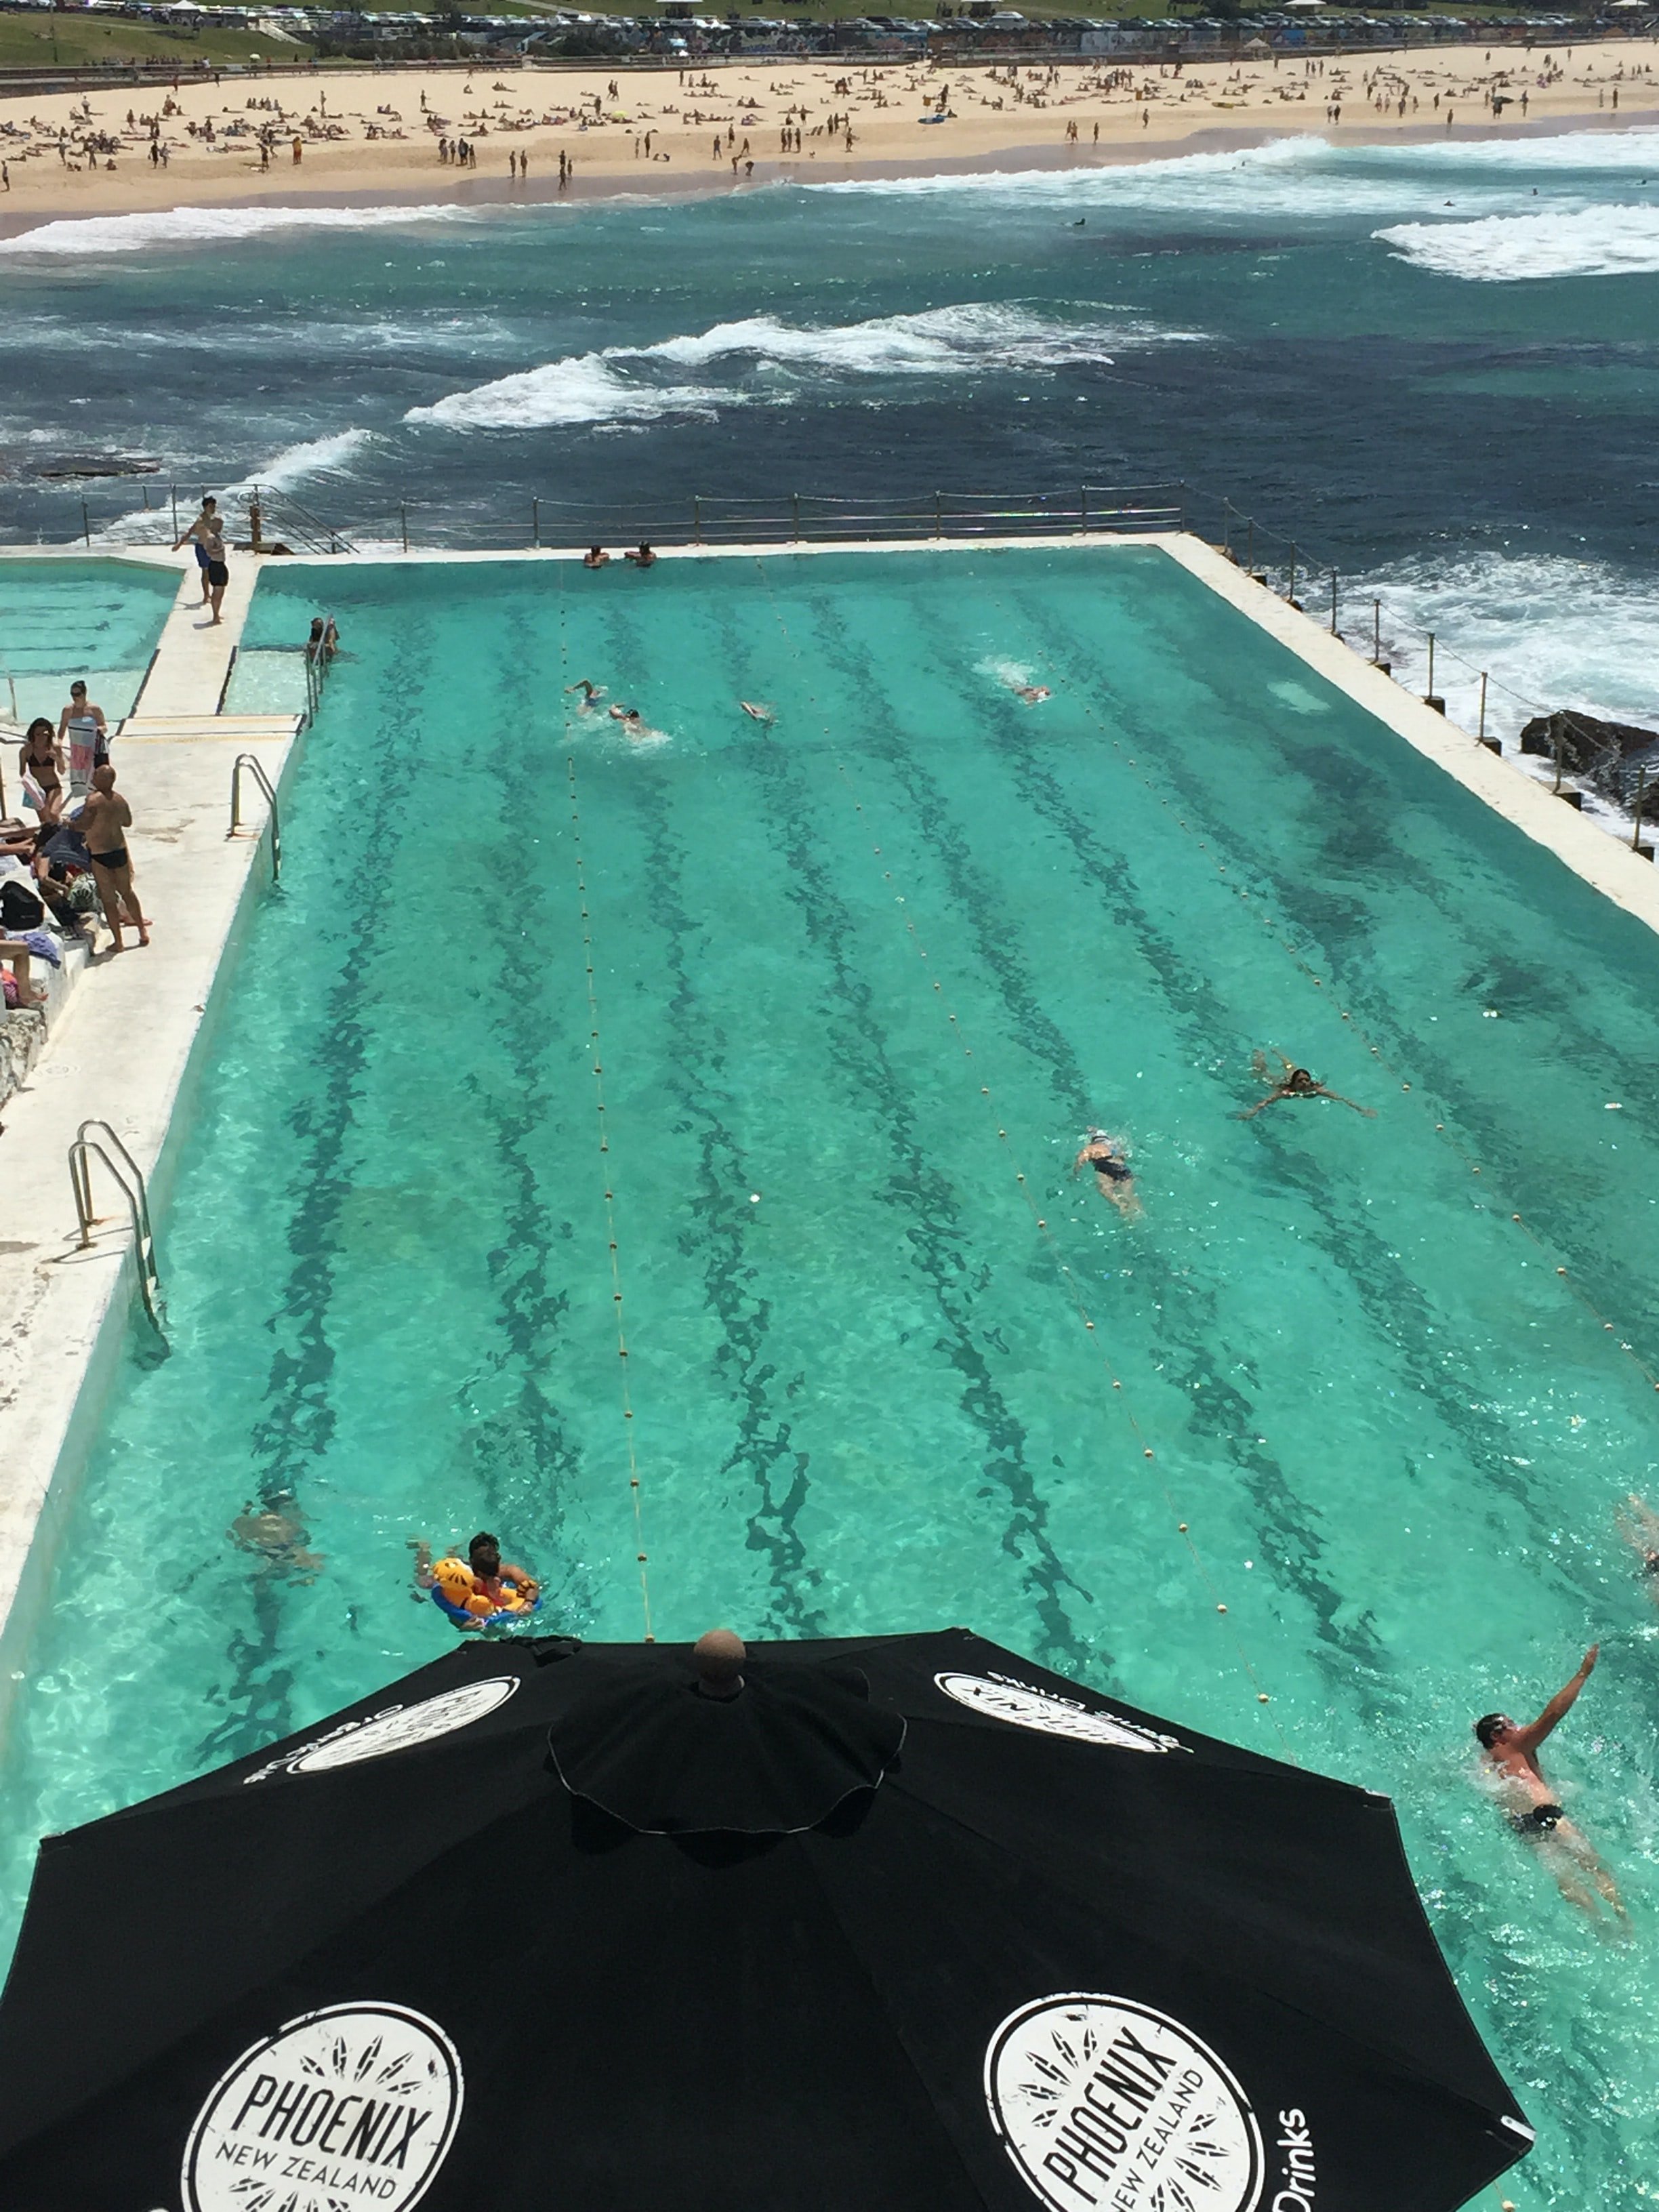 Exotic swimming pool in front of Bondi beach features fun loving people relaxing